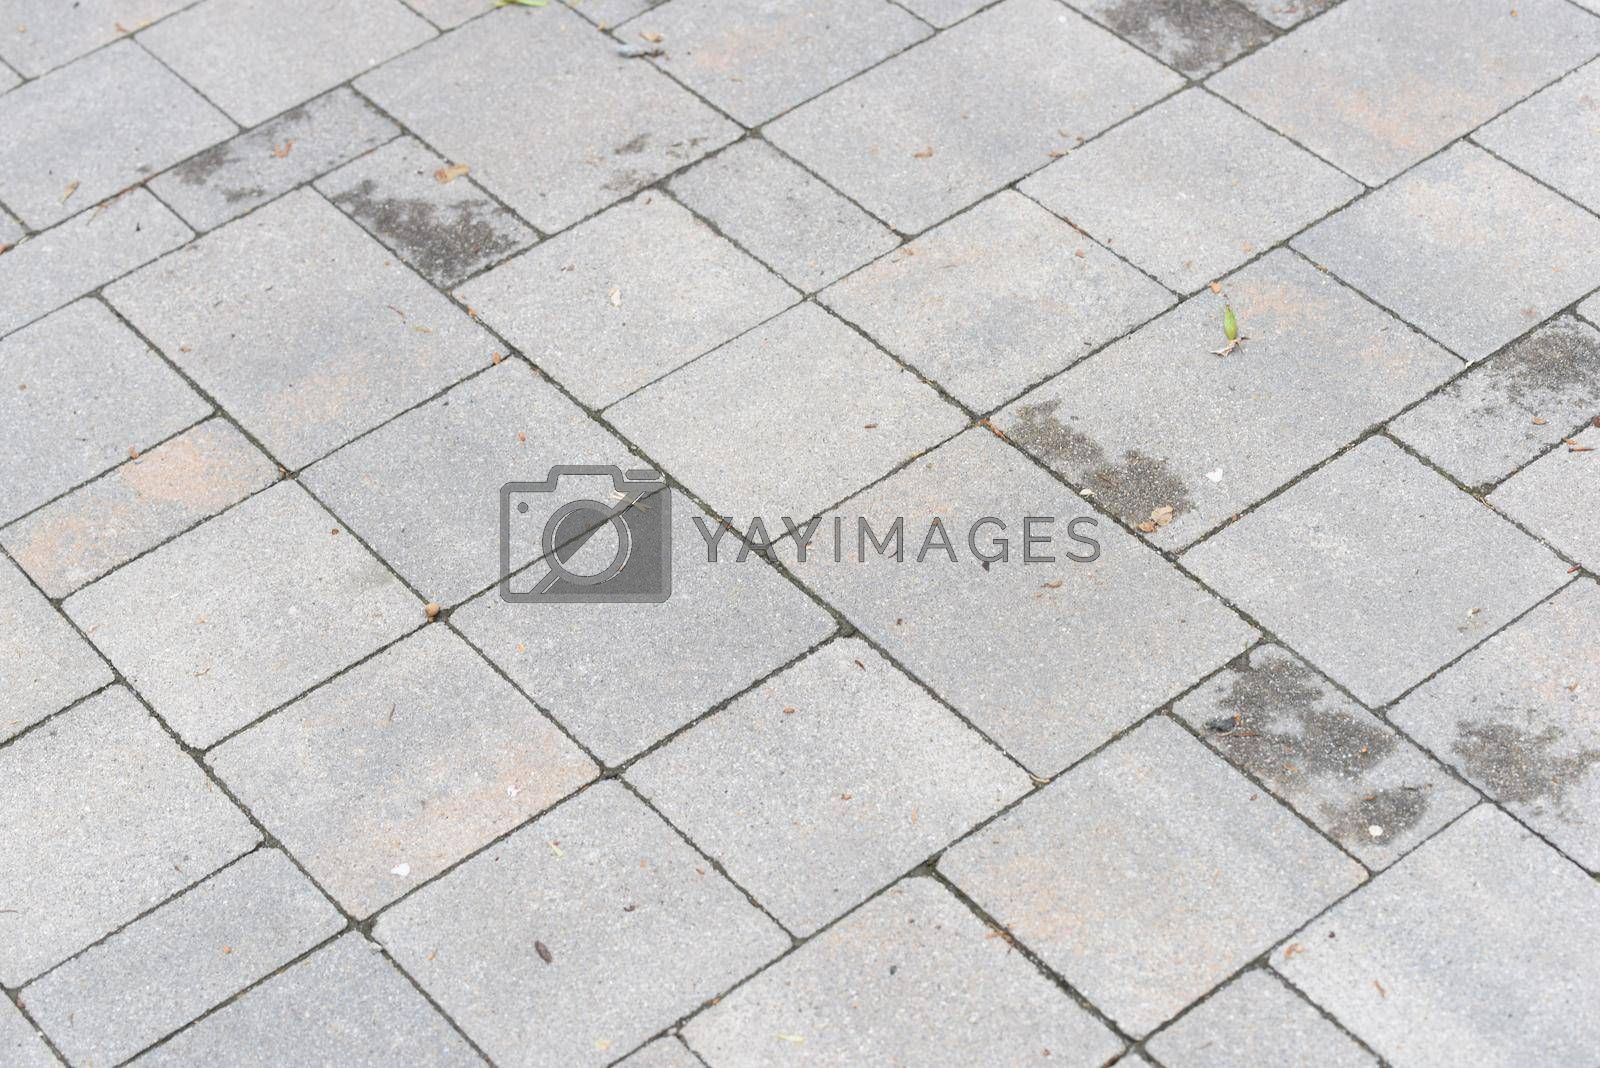 cobblestones as pavement for the street, natural building material for roads